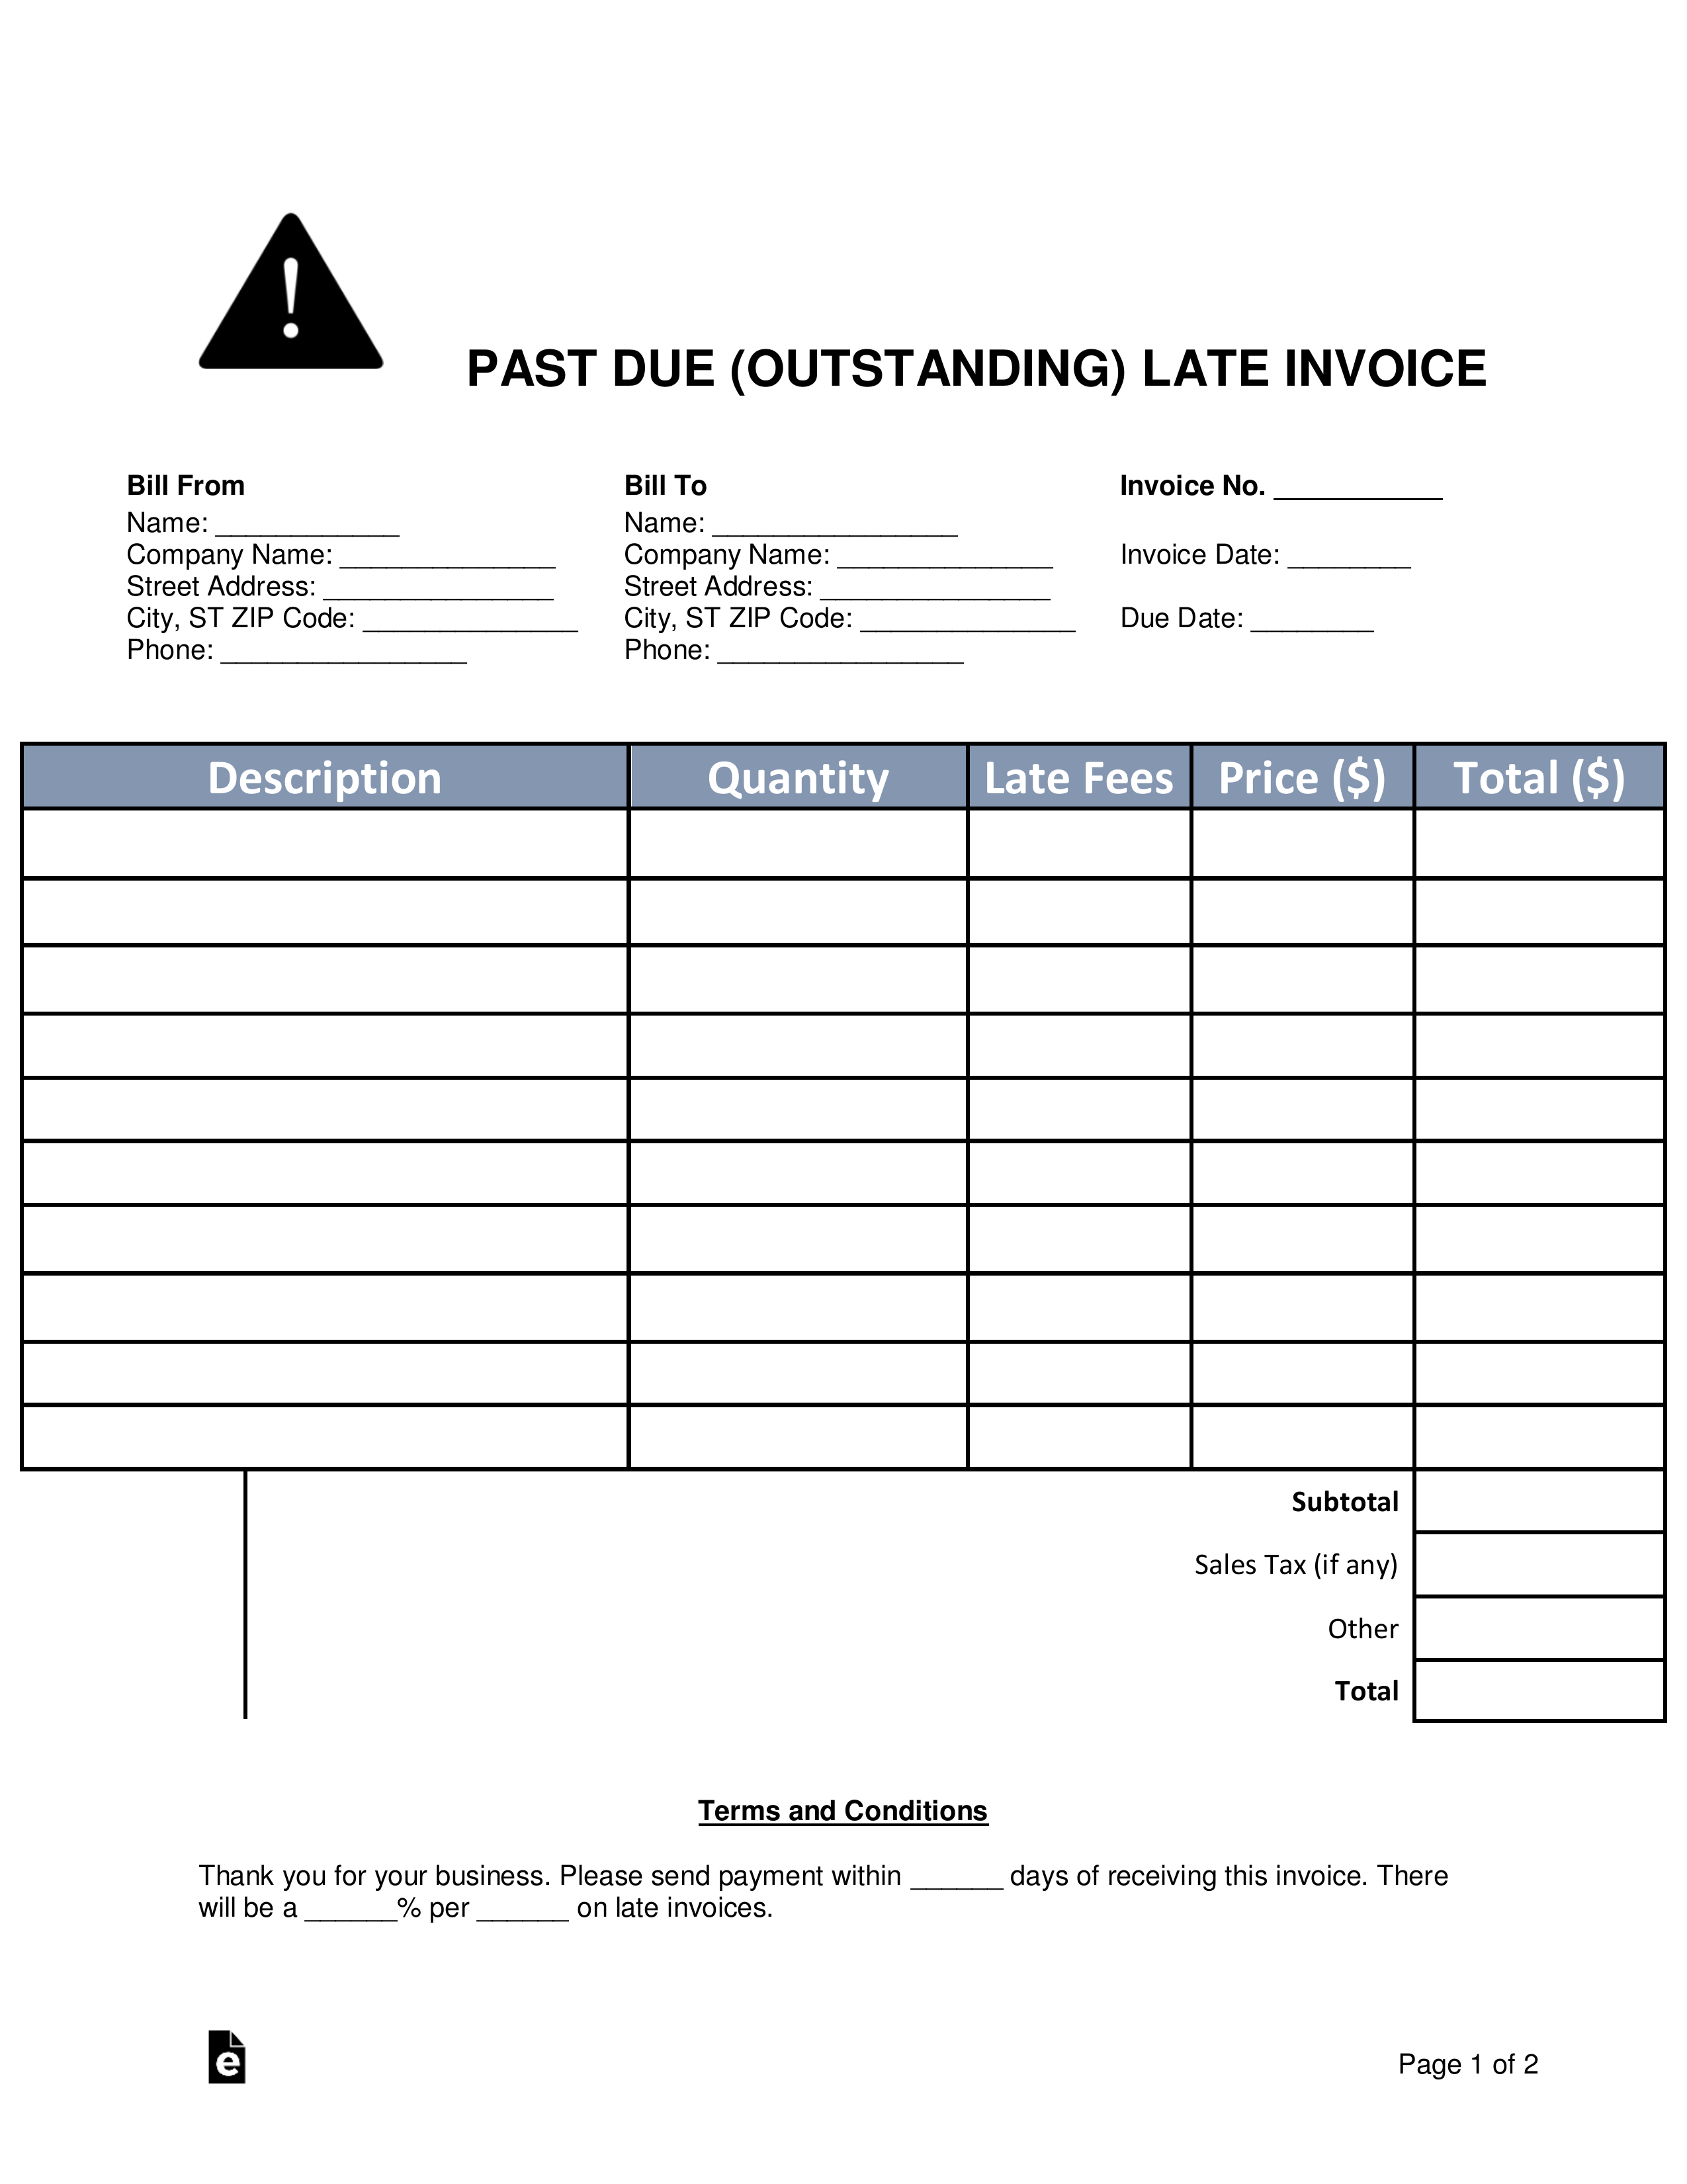 free past due  outstanding  late invoice